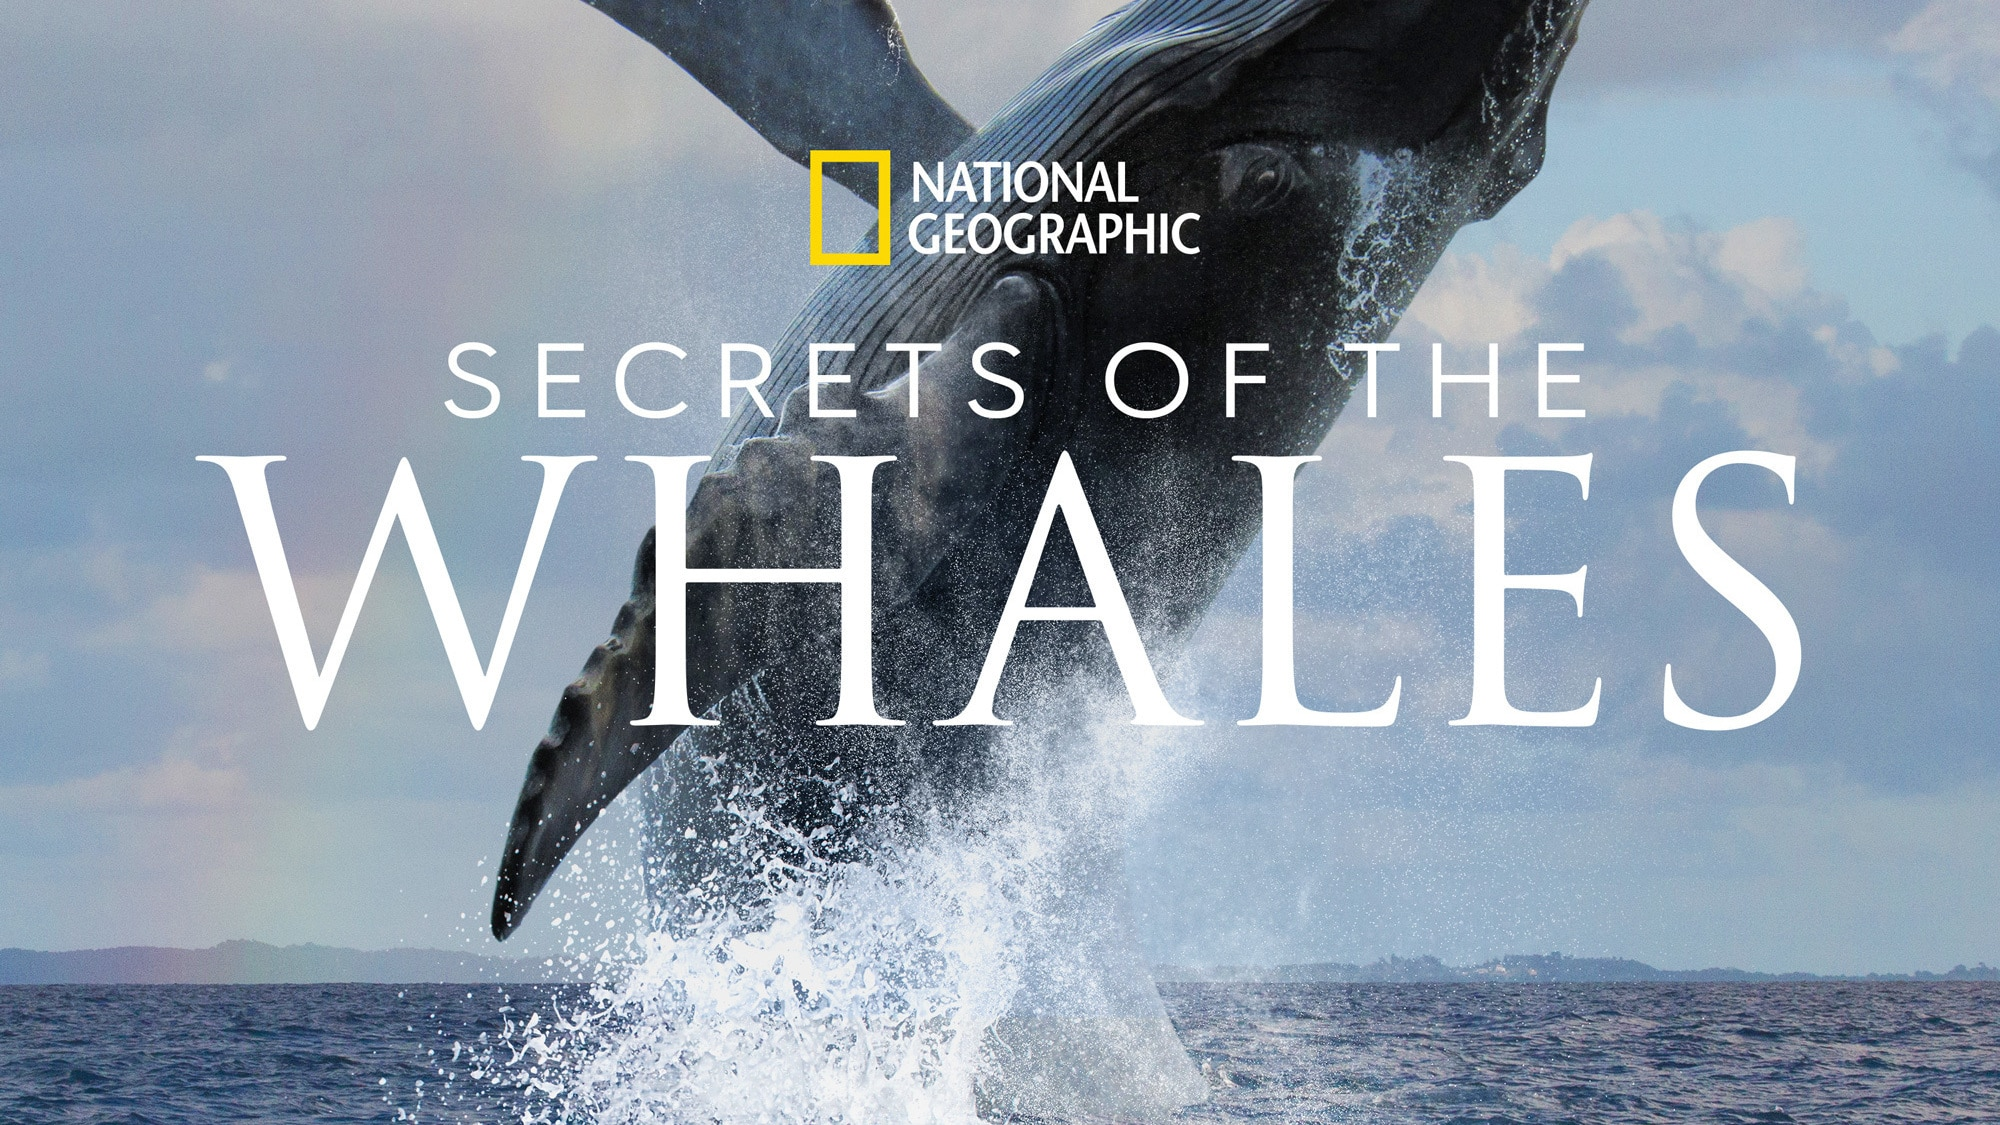 SECRETS OF THE WHALES - From executive producer and National Geographic Explorer-at-Large James Cameron and National Geographic Explorer Brian Skerry comes SECRETS OF THE WHALES. Narrated by Sigourney Weaver, the four-part event series tells the stories of the extraordinary cultures of five different whale species. (National Geographic)